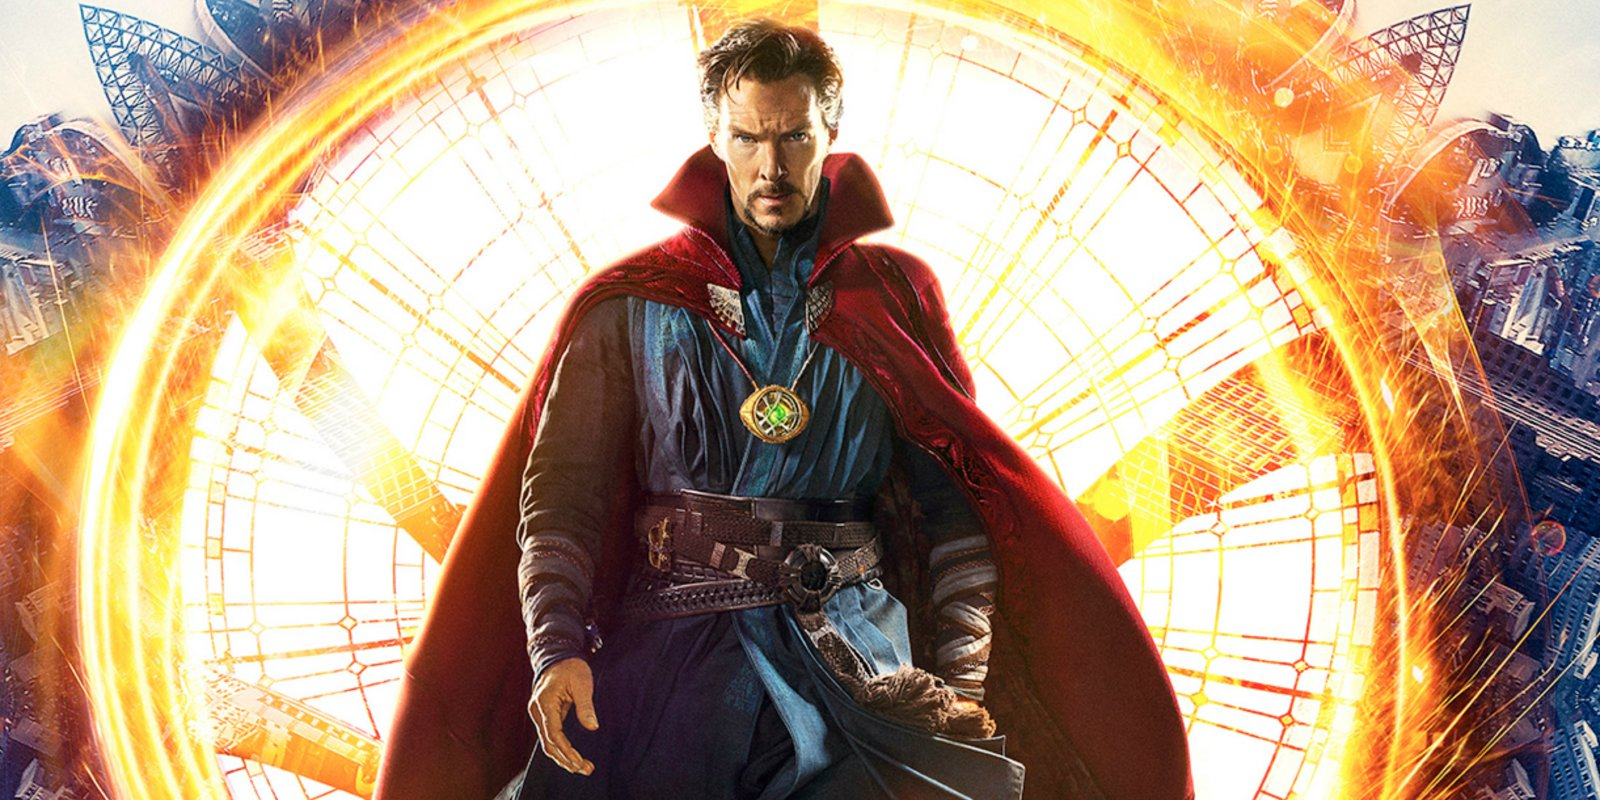 Doctor Strange 2017 action movie Benedict Cumberbatch